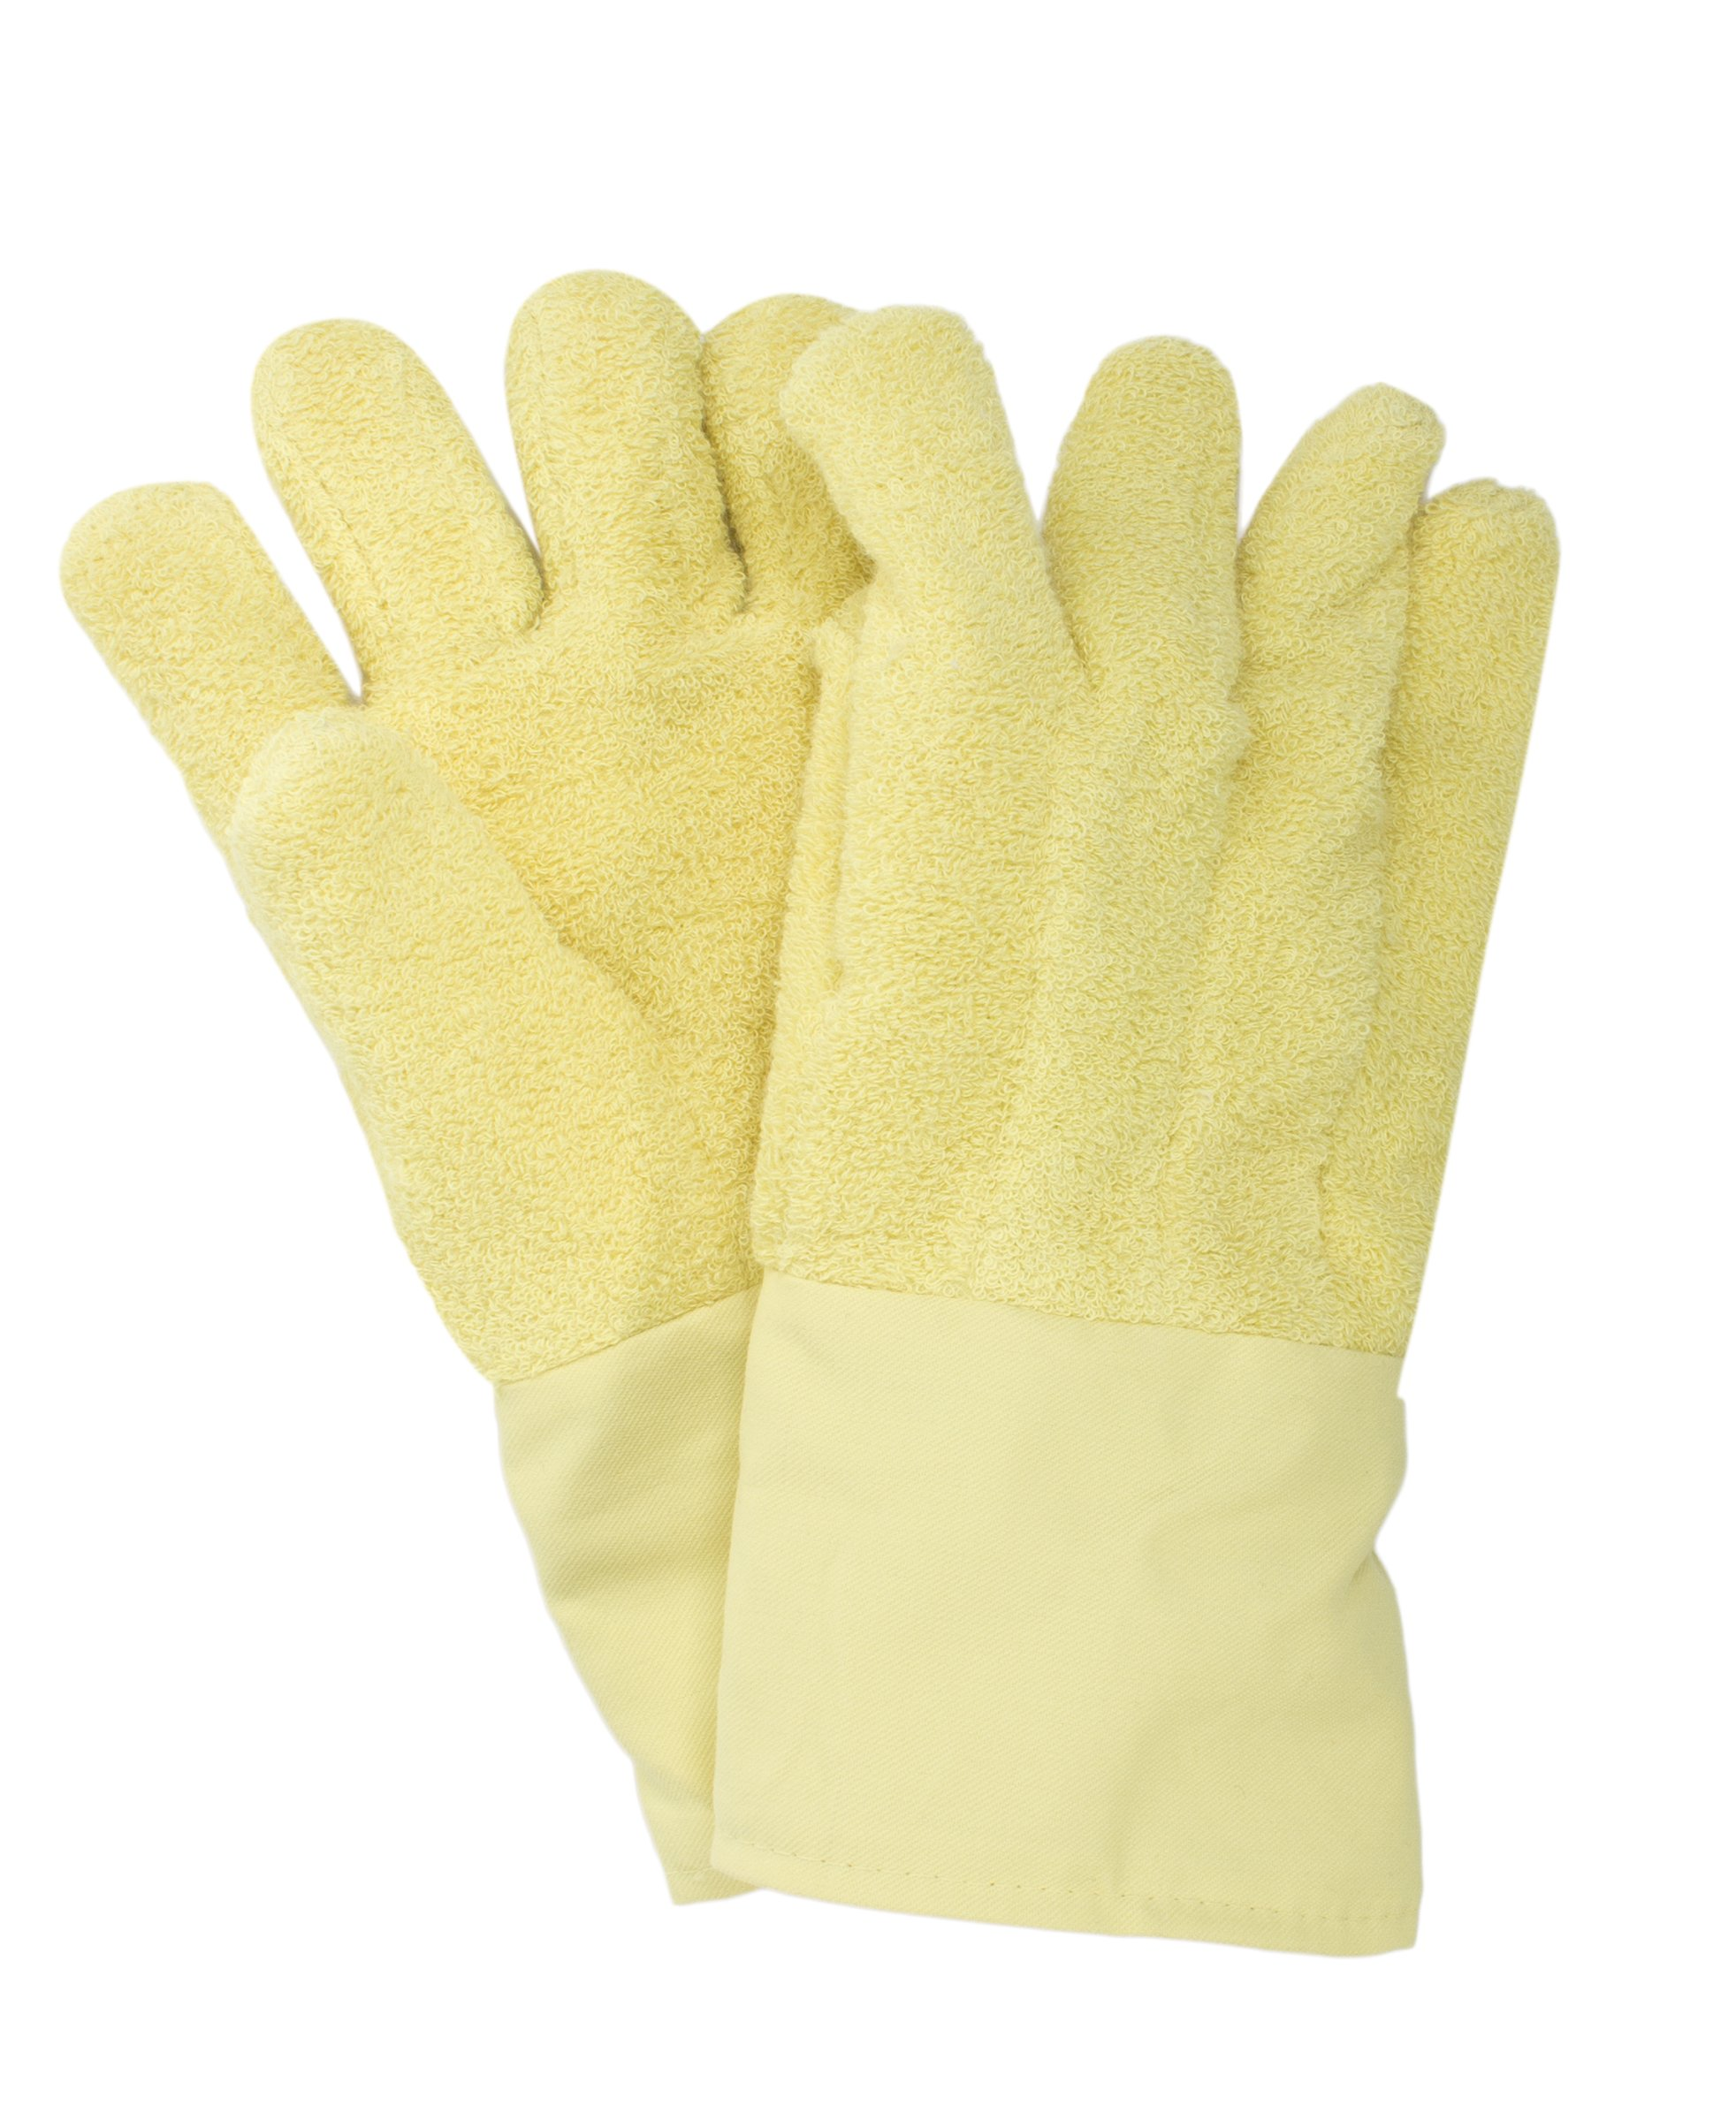 National Safety Apparel G51KTLW00214 Kevlar Terry Glove with Extra Felt Patch, Jumbo, Yellow